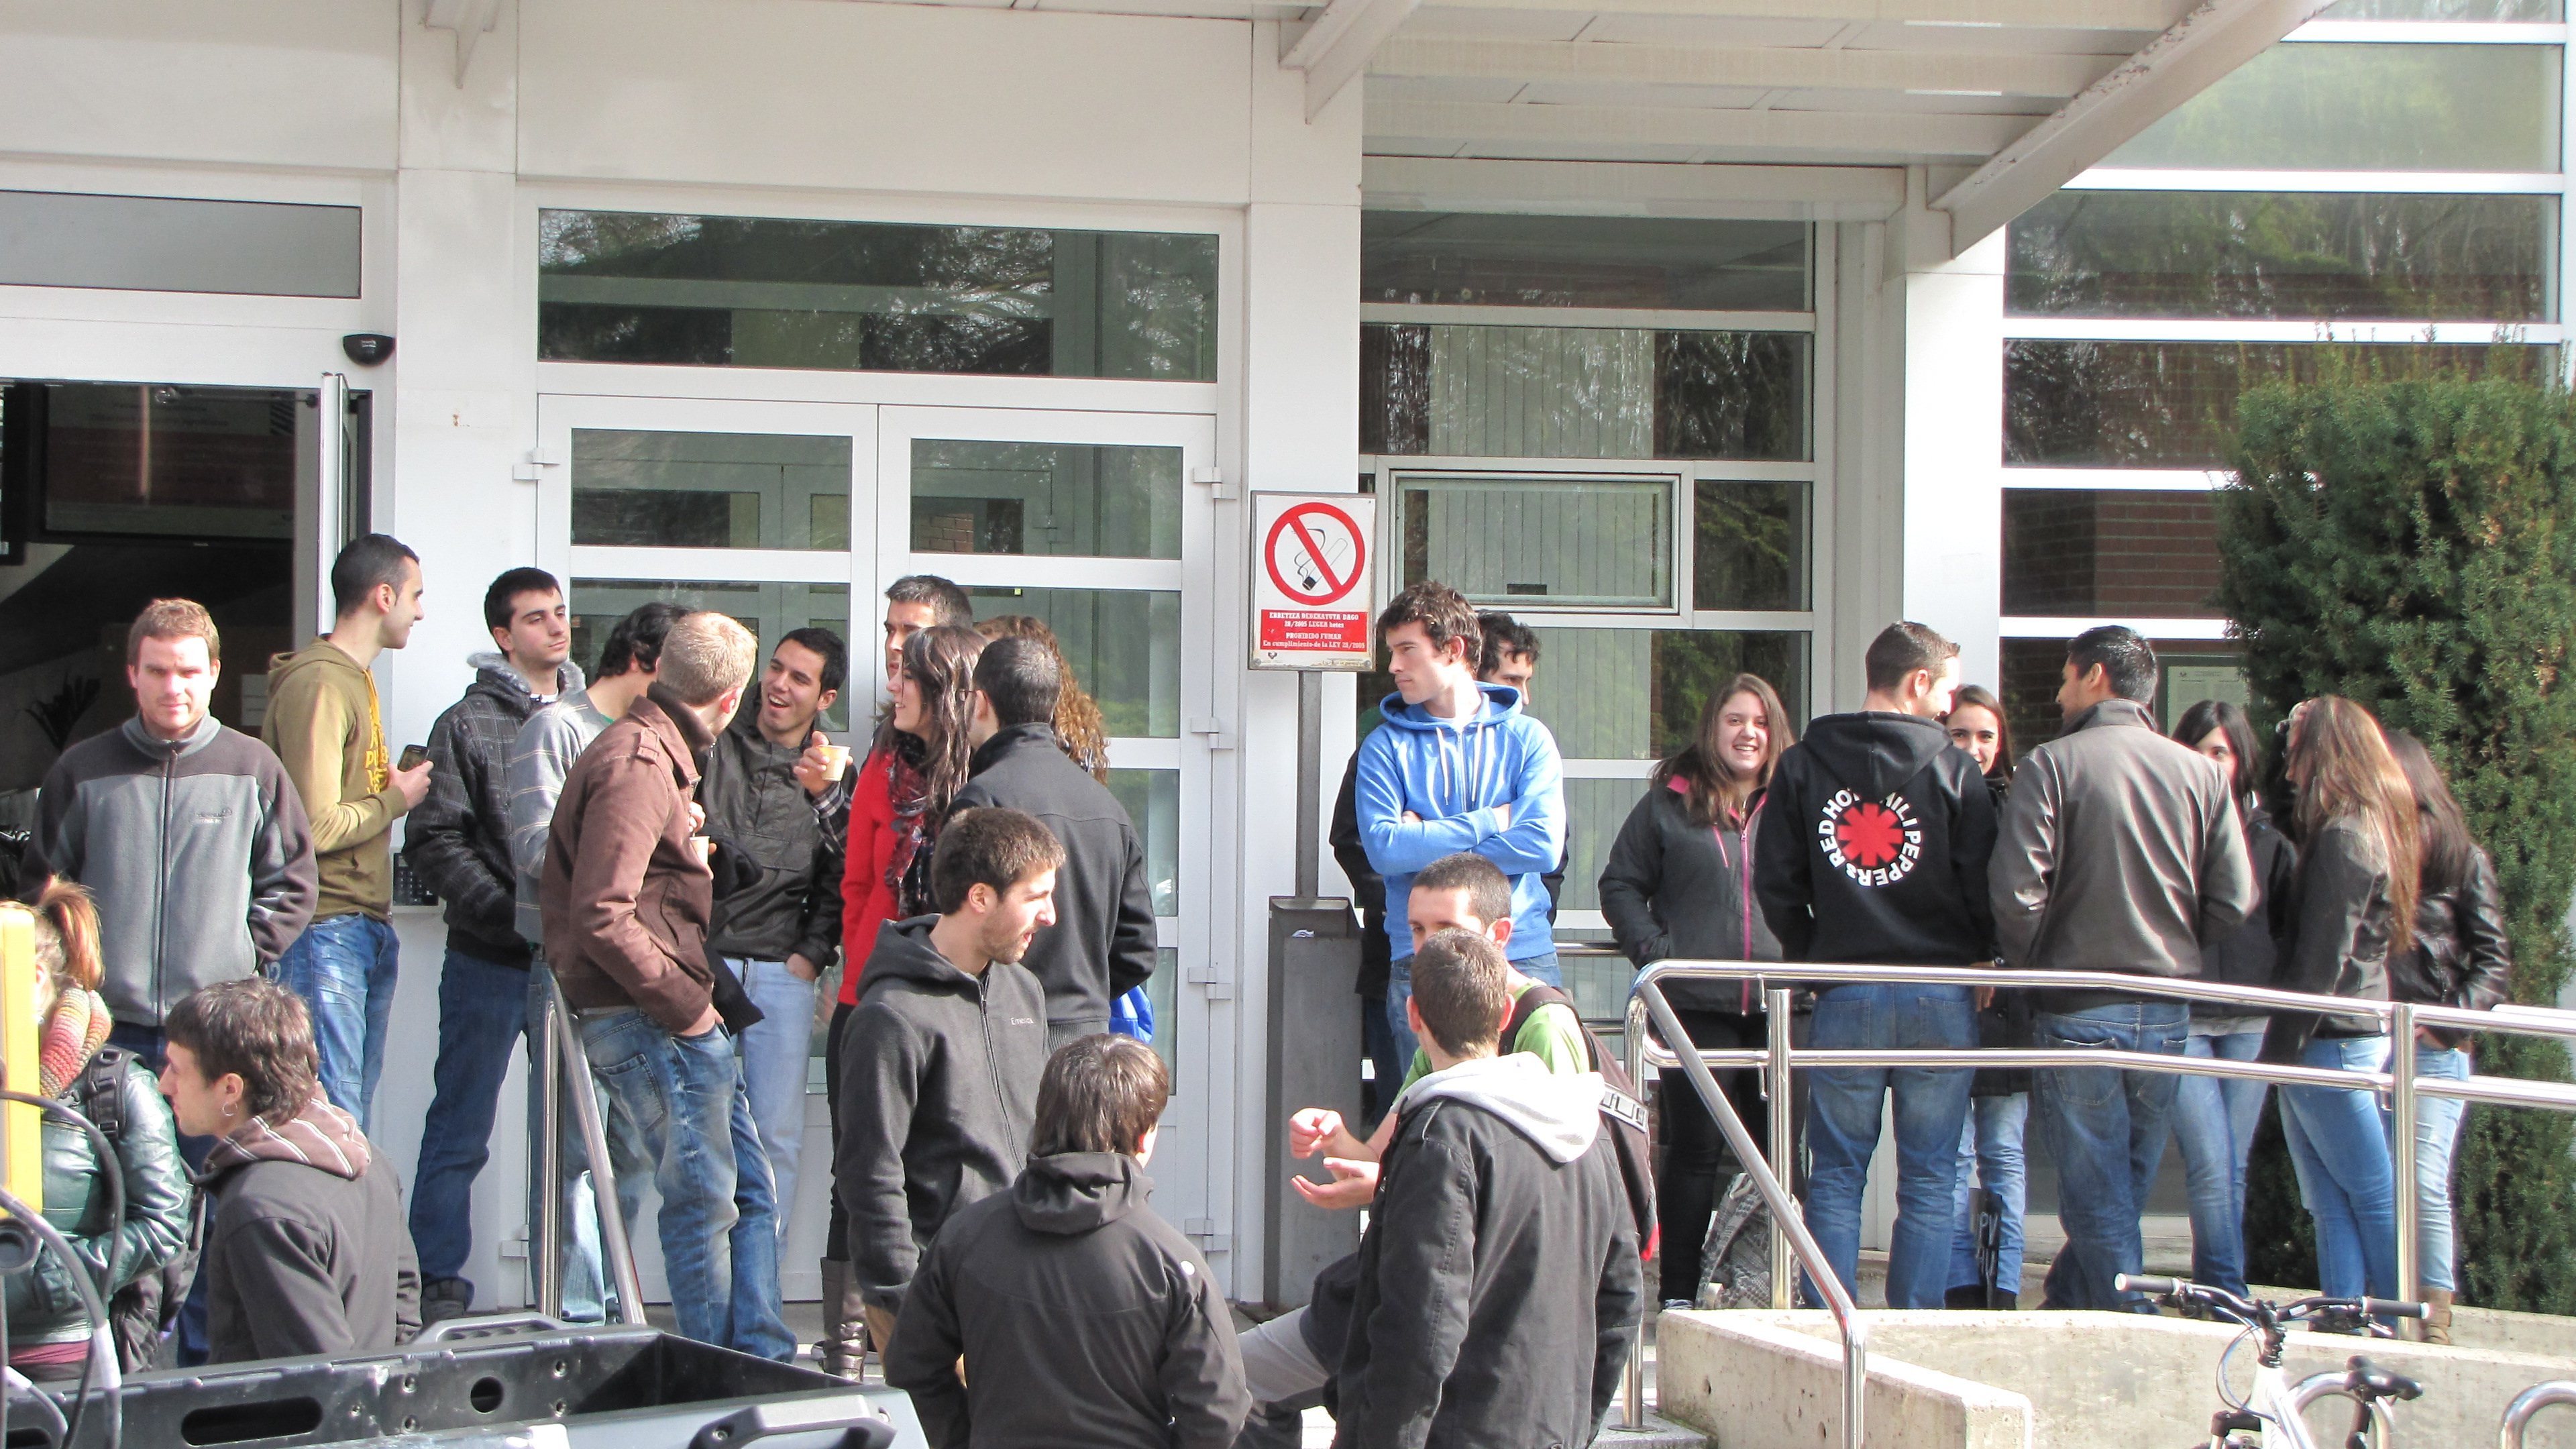 Students at the school gate